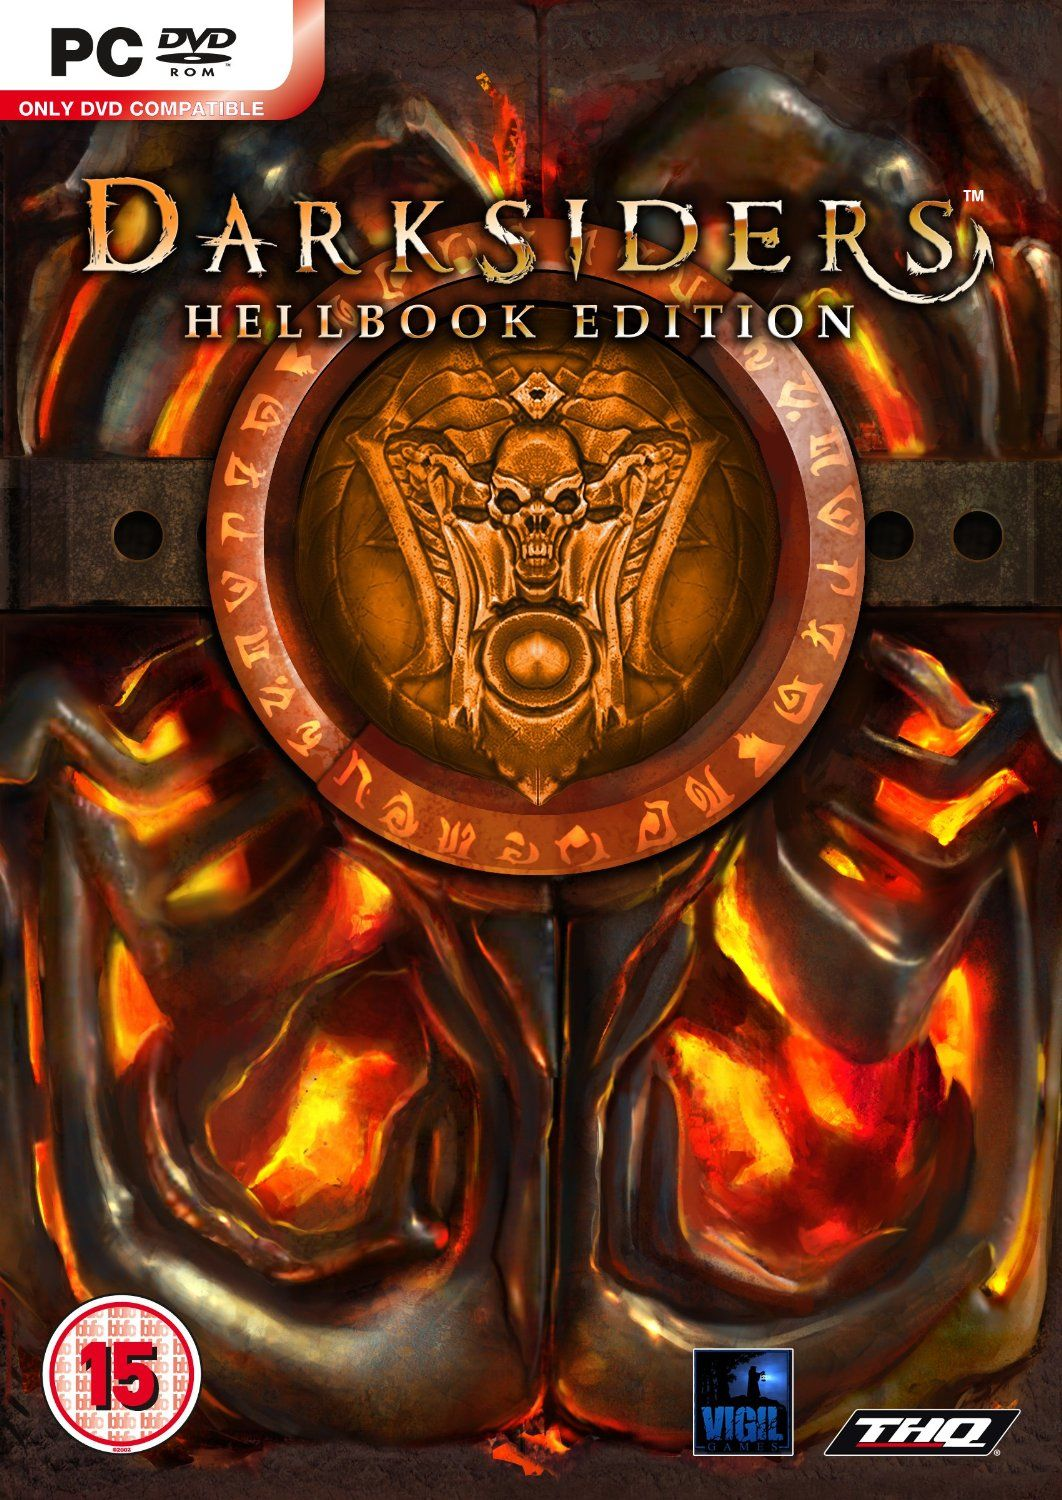 Darksiders: Hell Book Edition (PC) - 1